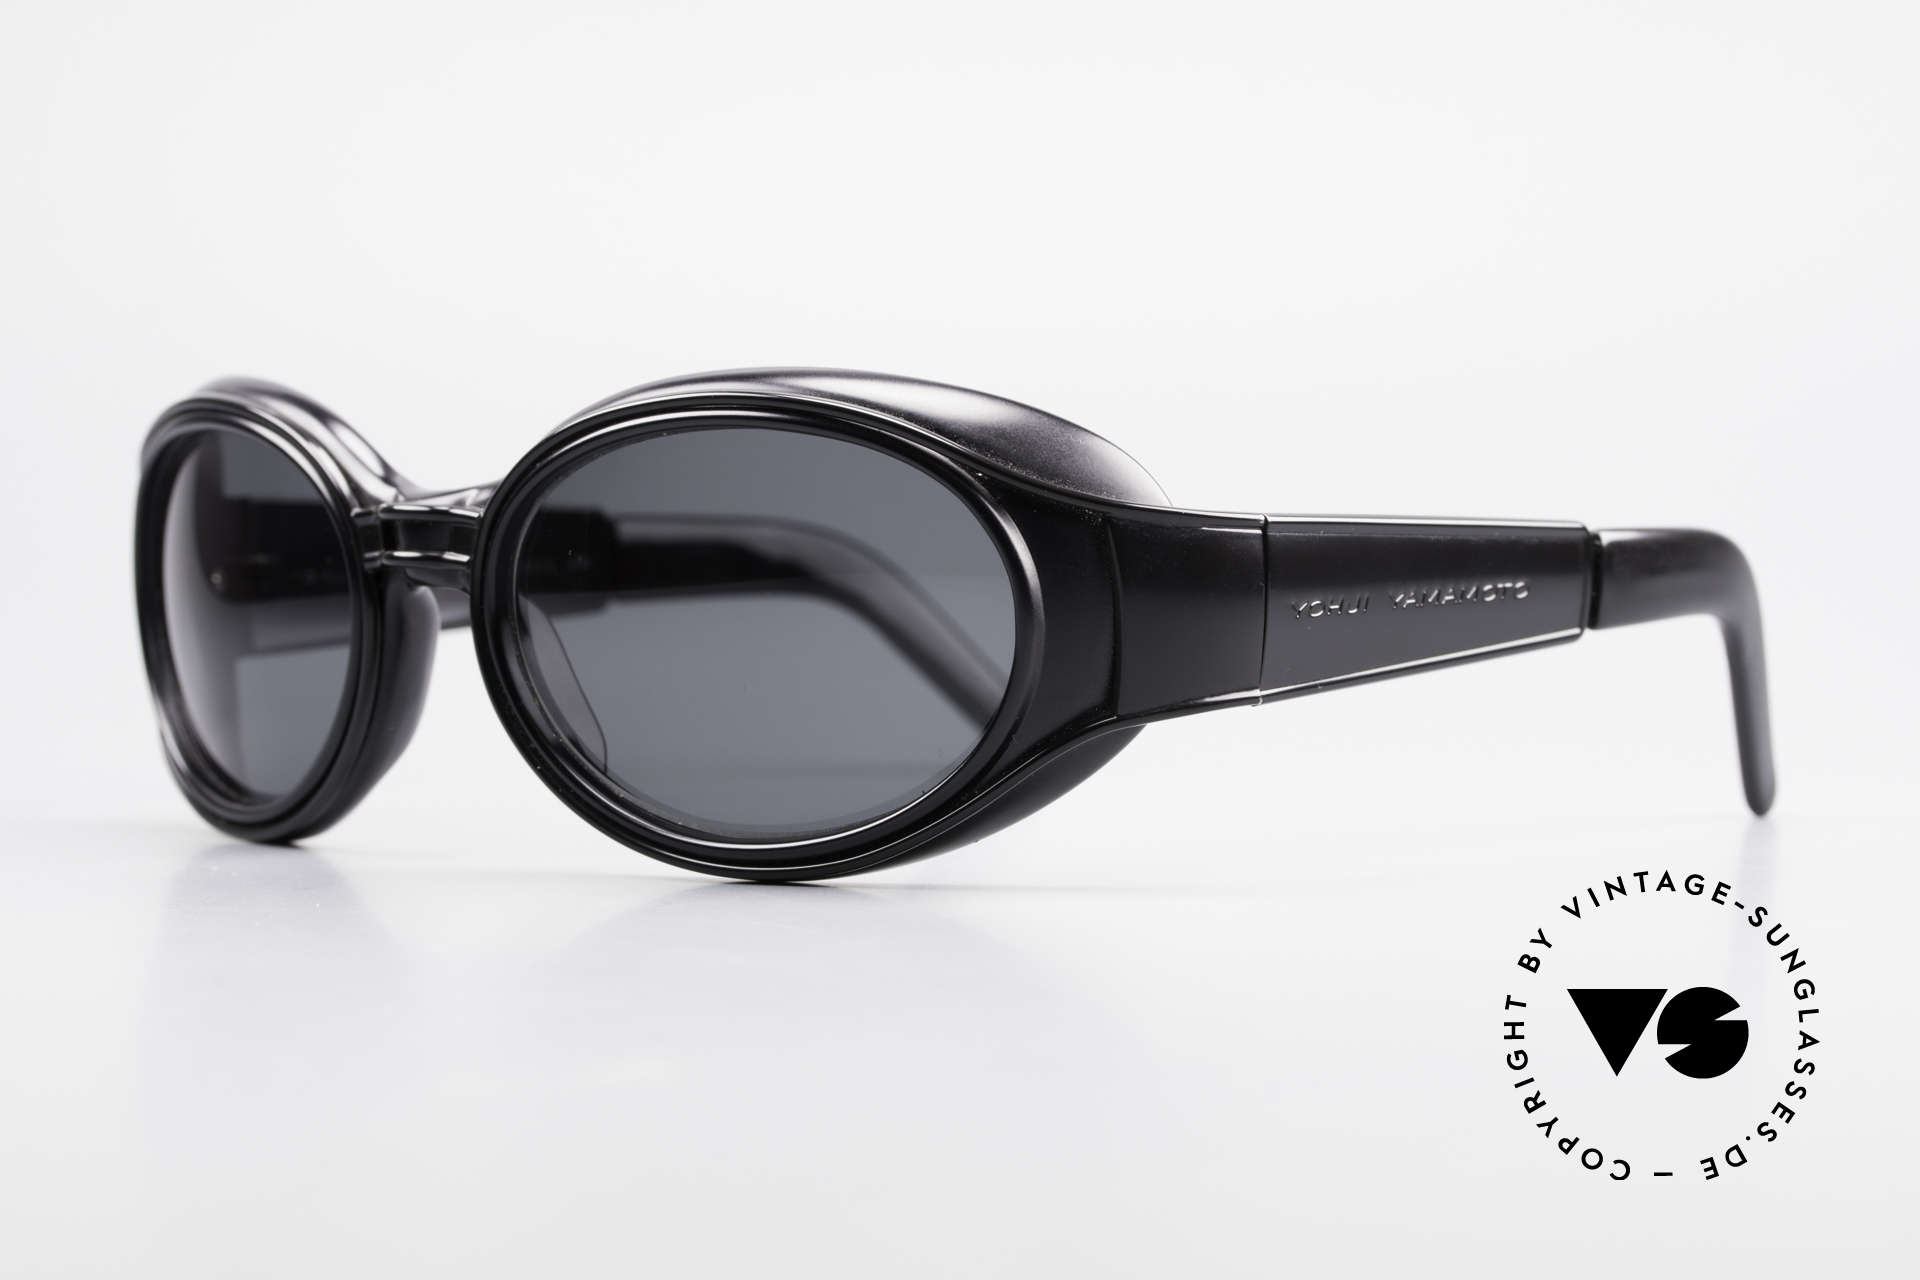 Yohji Yamamoto 52-6202 Sporty XL Designer Sunglasses, but still very sporty and extra large size (149mm width), Made for Men and Women